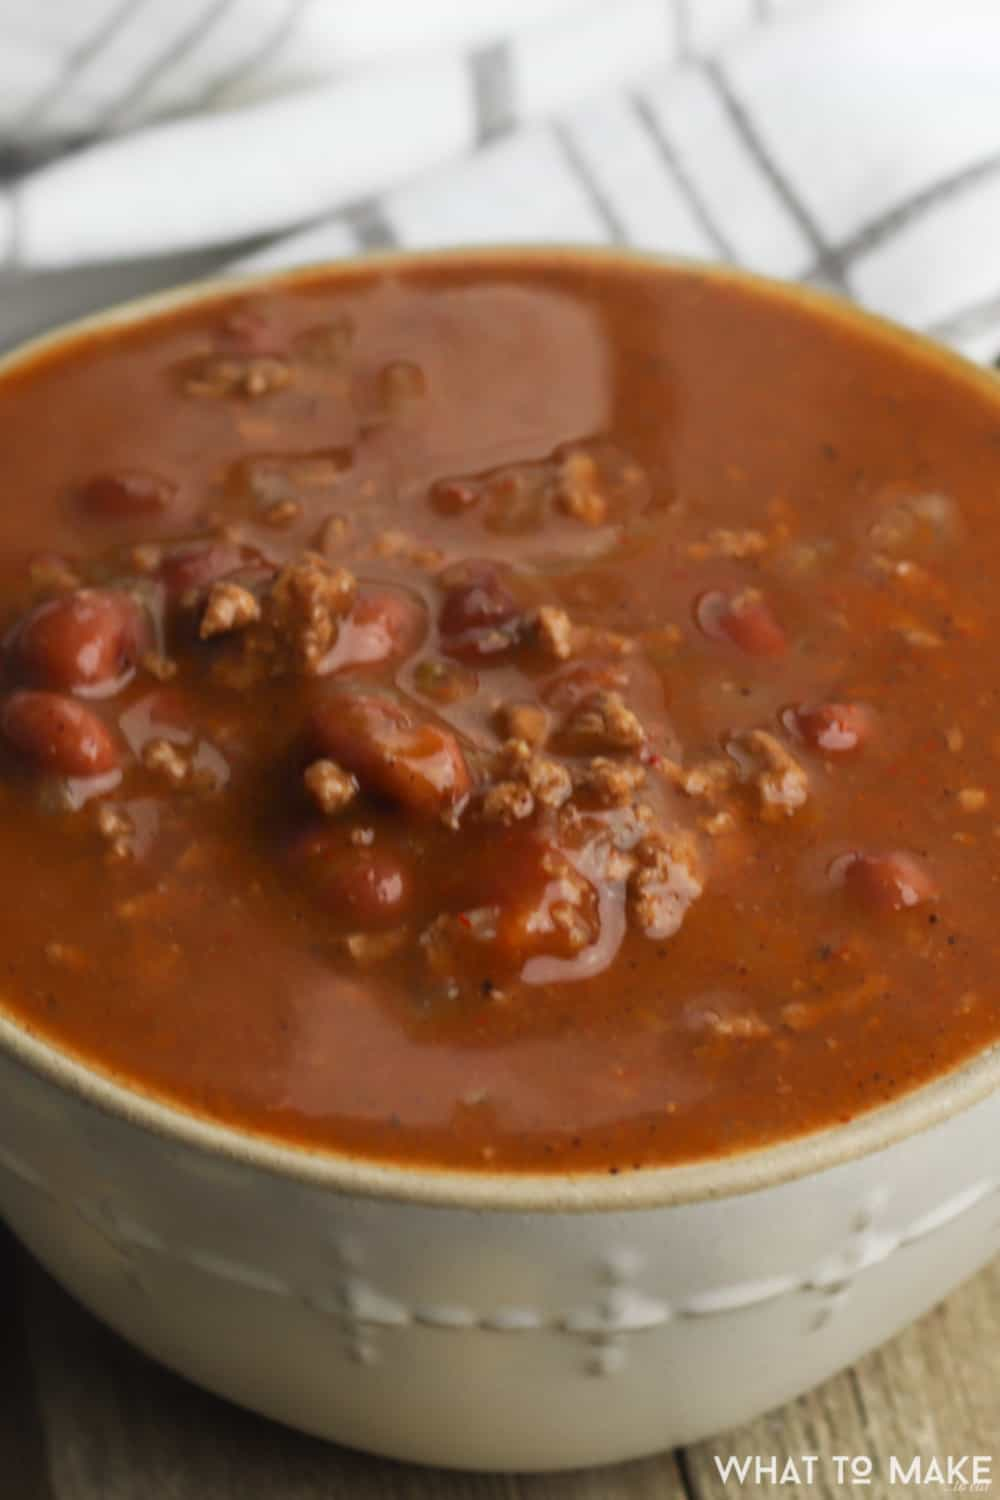 A simple 30-minute recipe for making chili in a pressure cooker.